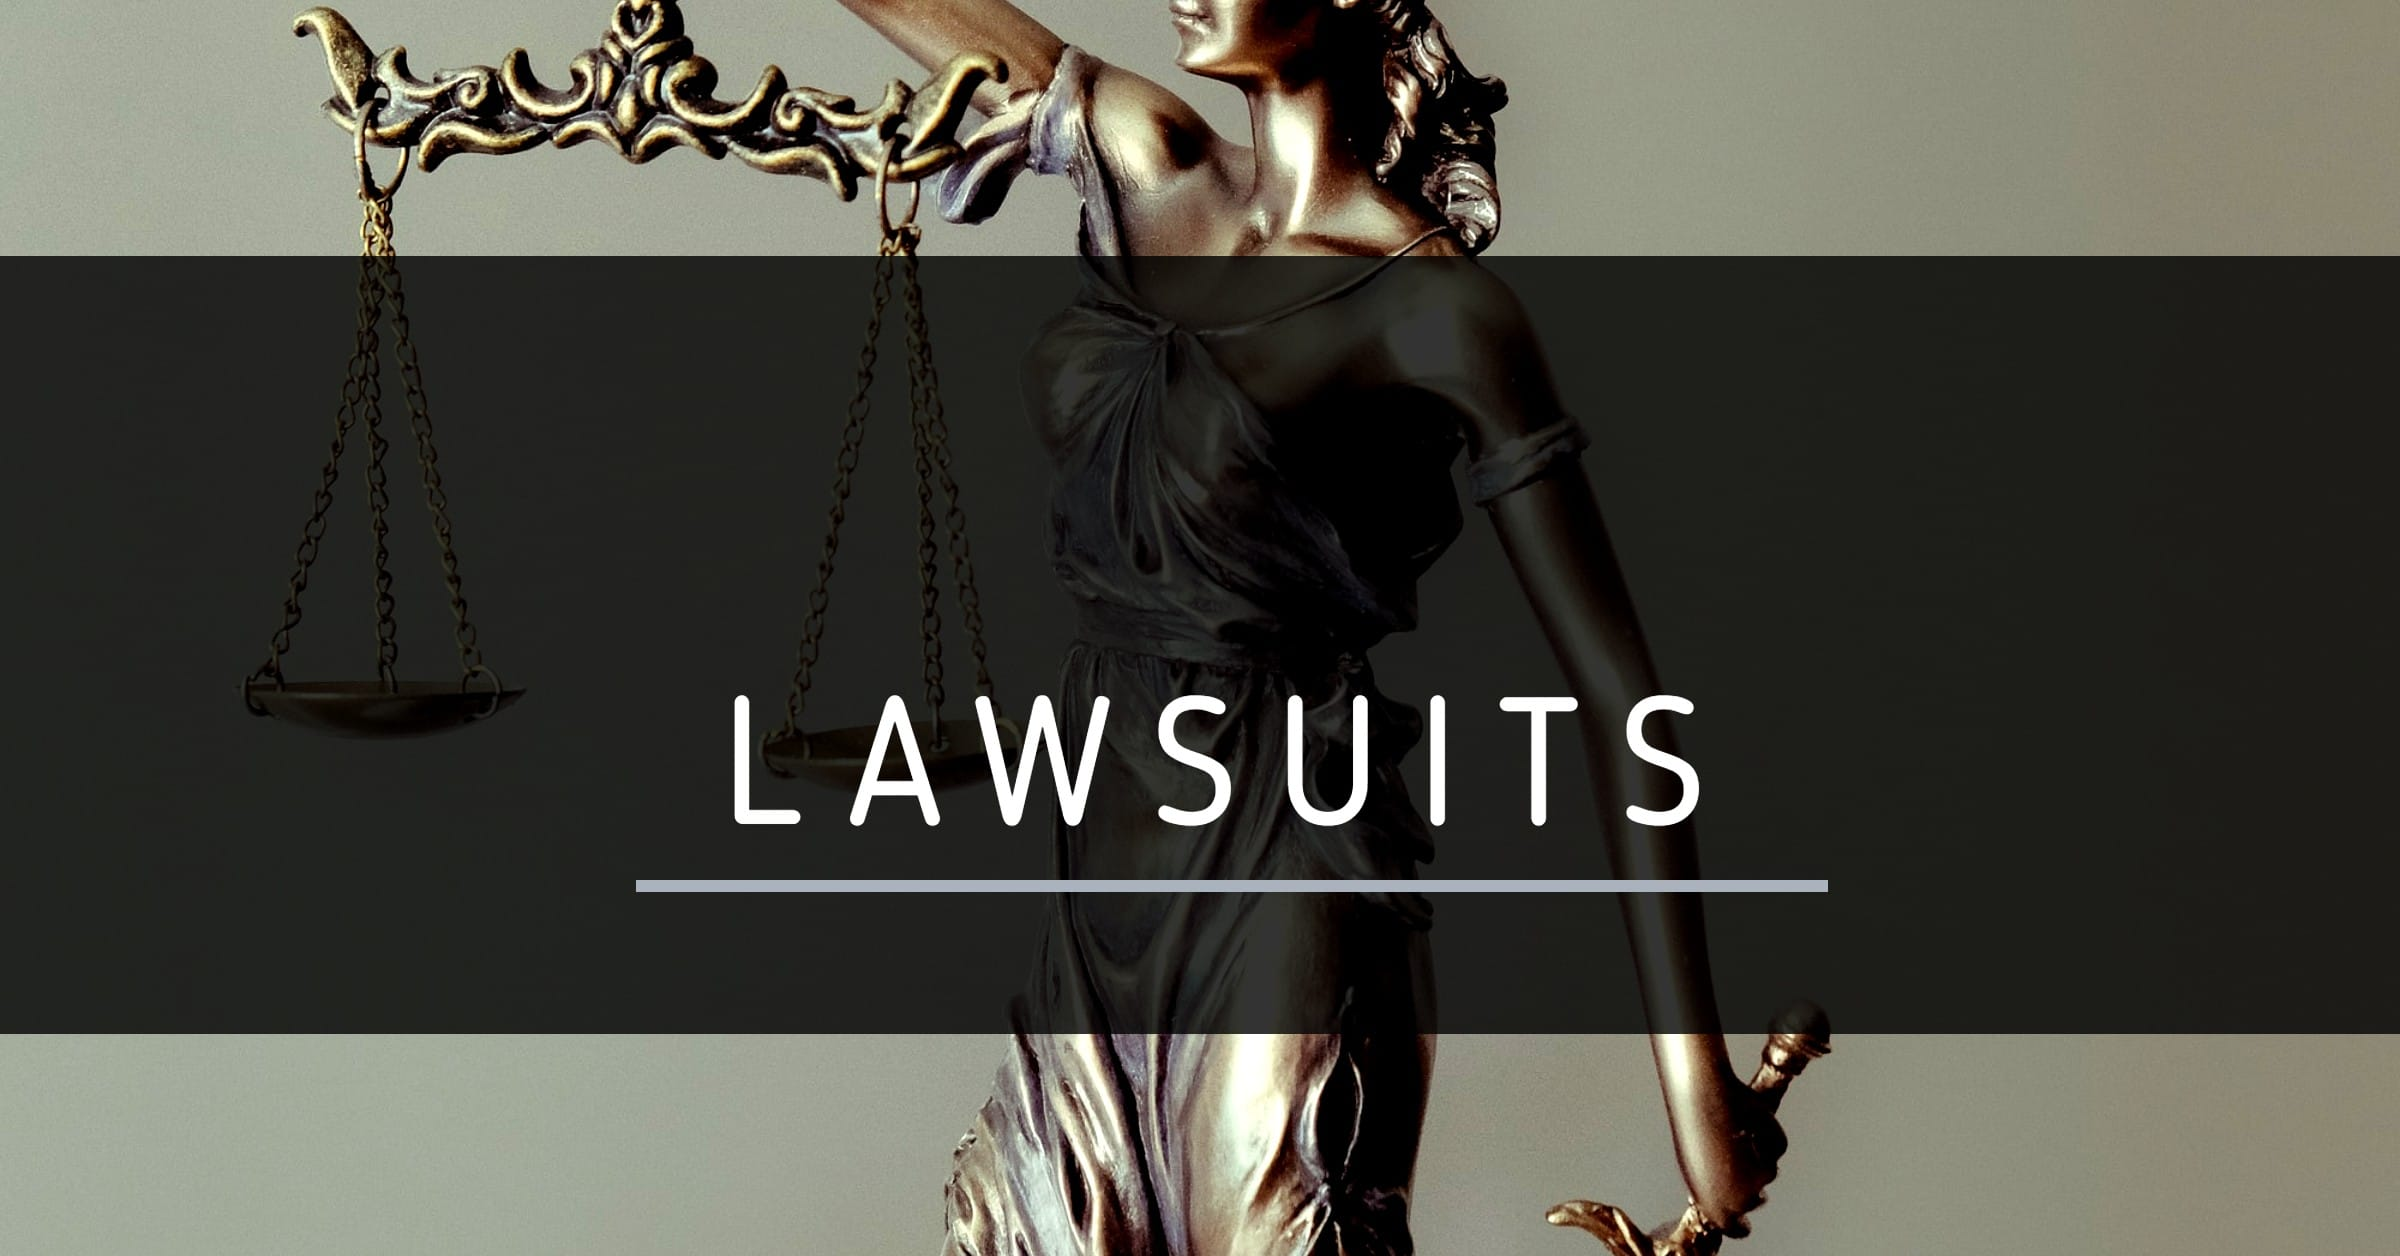 An image of justice with scales and the words